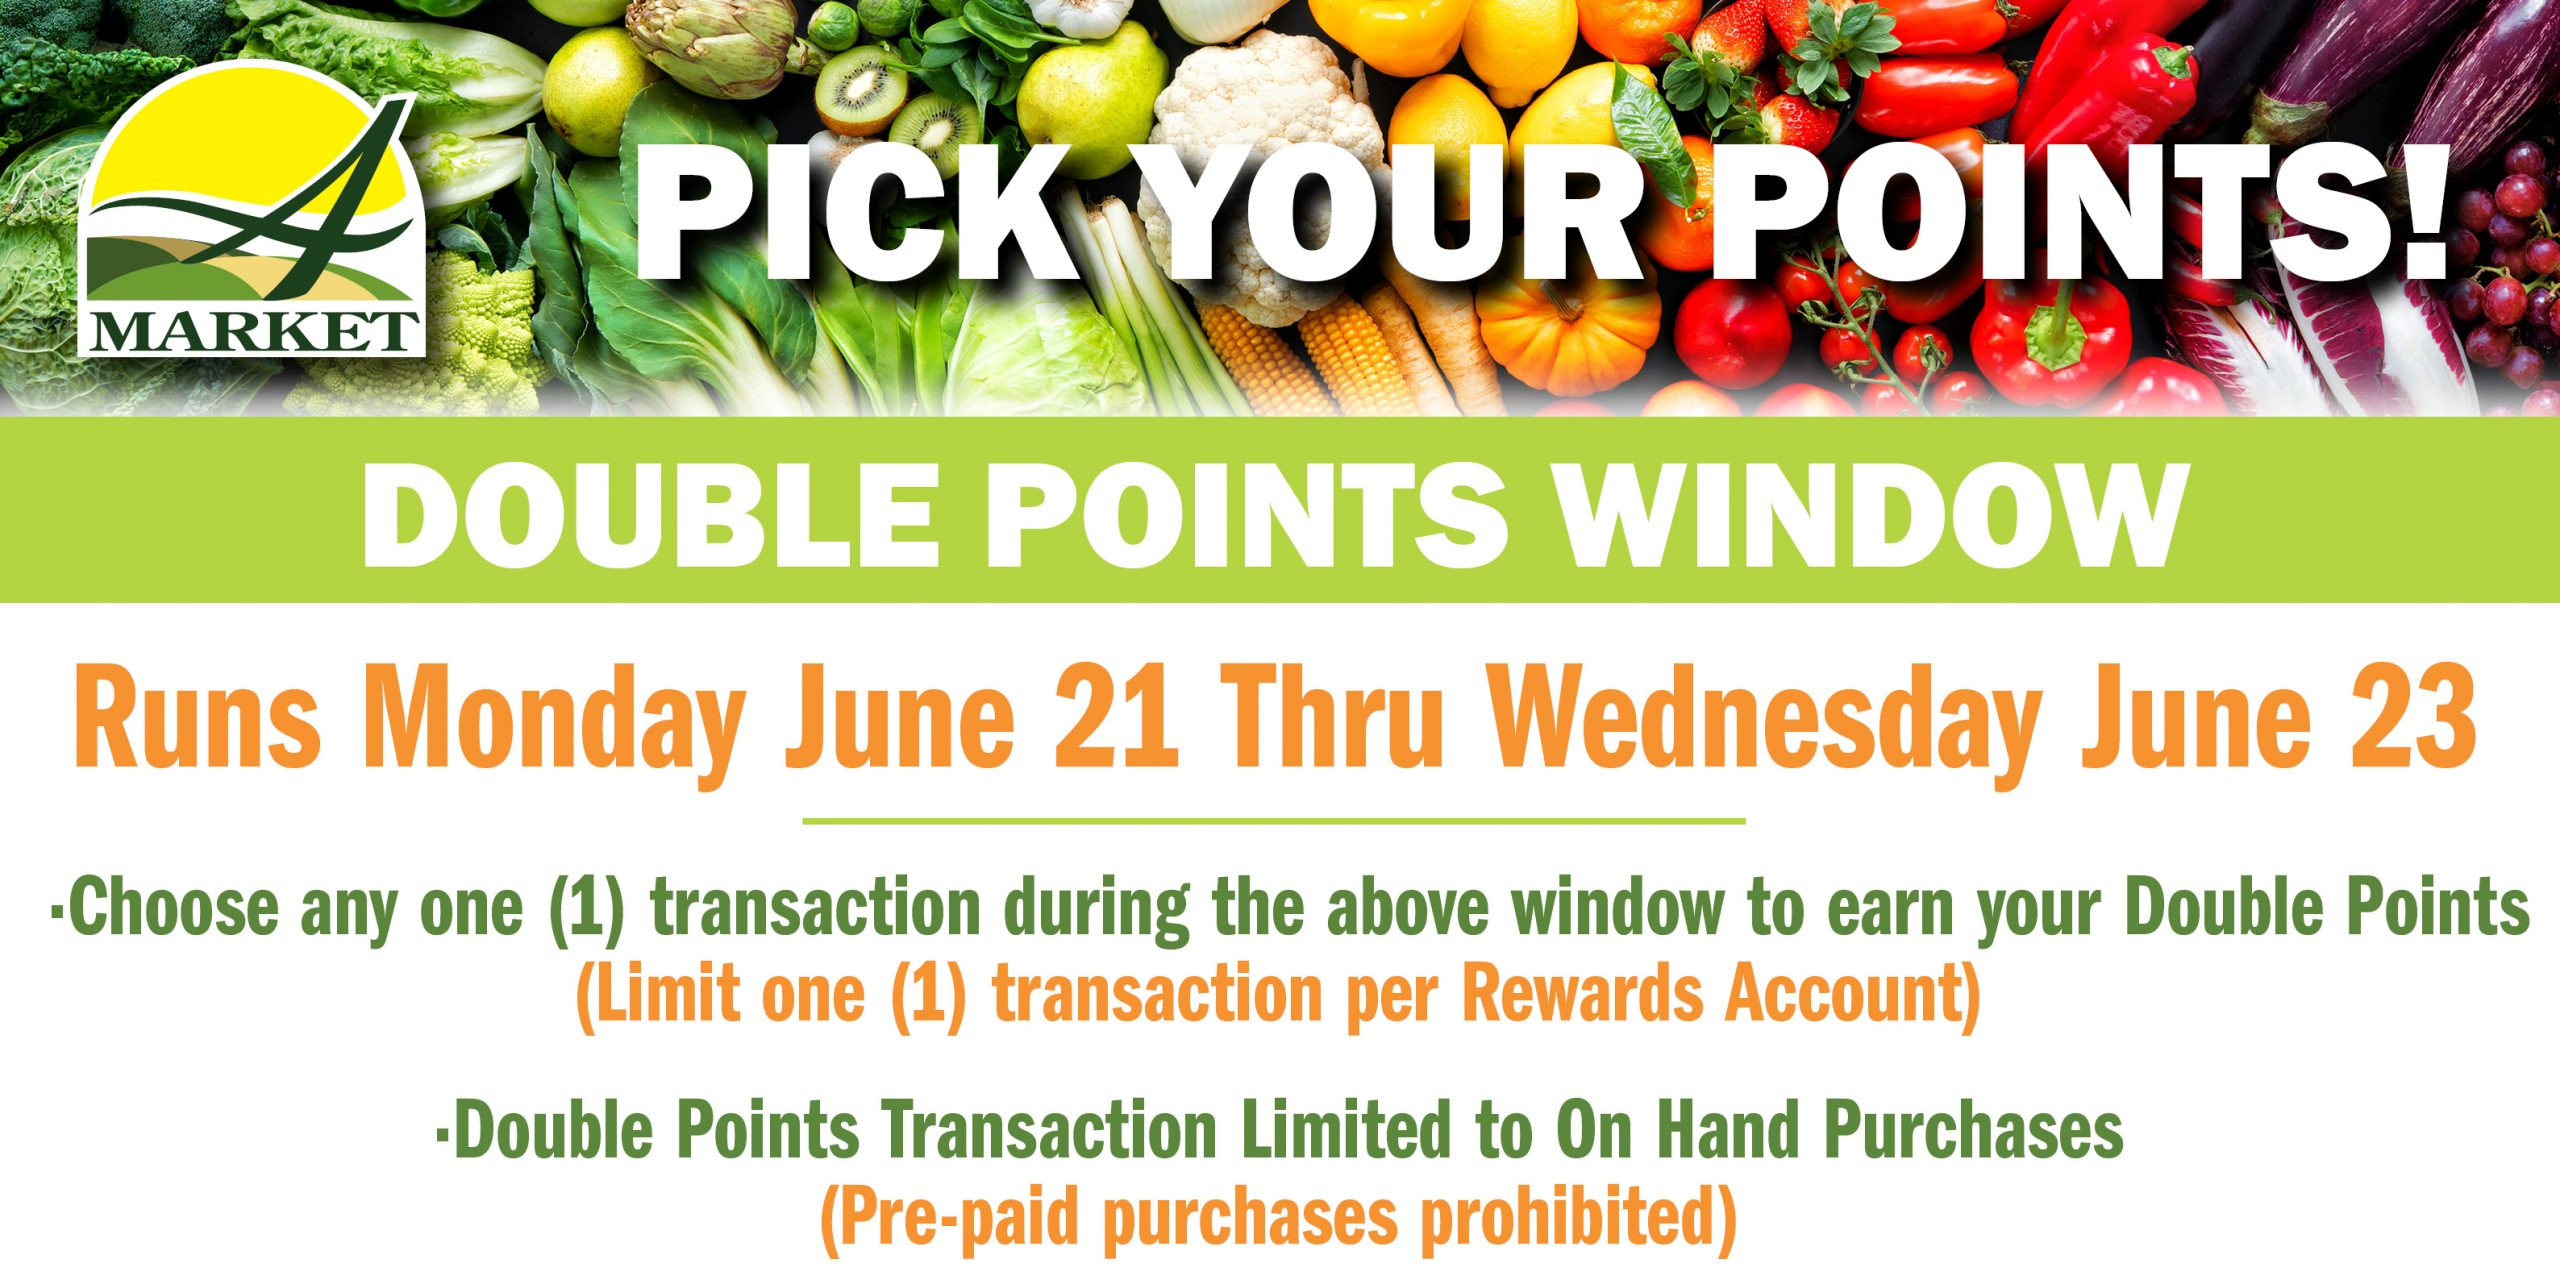 Pick your Points!